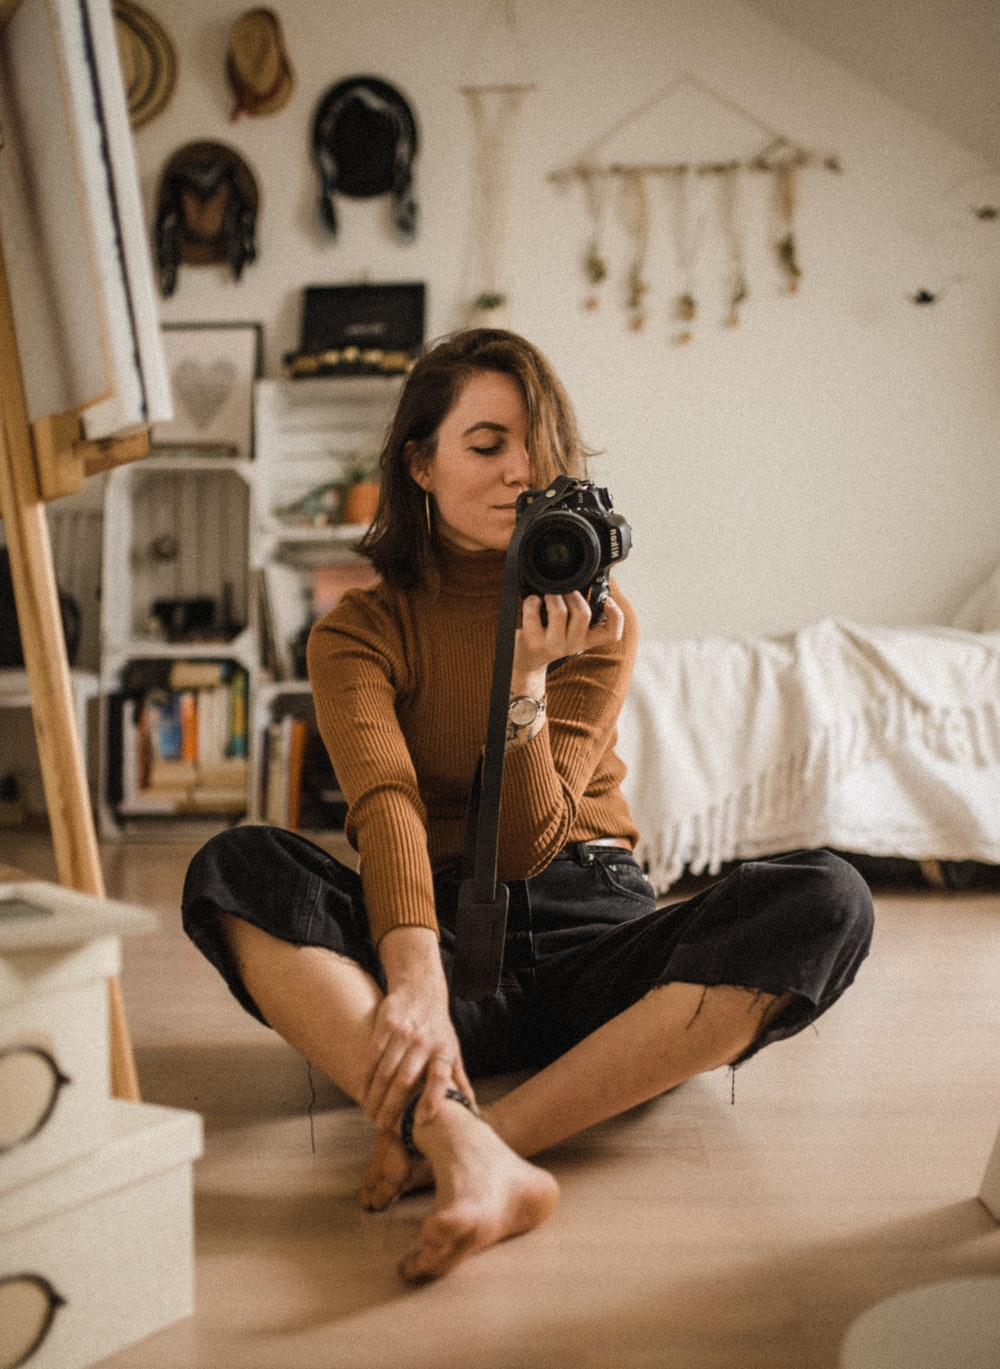 woman sitting on brown wooden floor while holding black DSLR camera in room